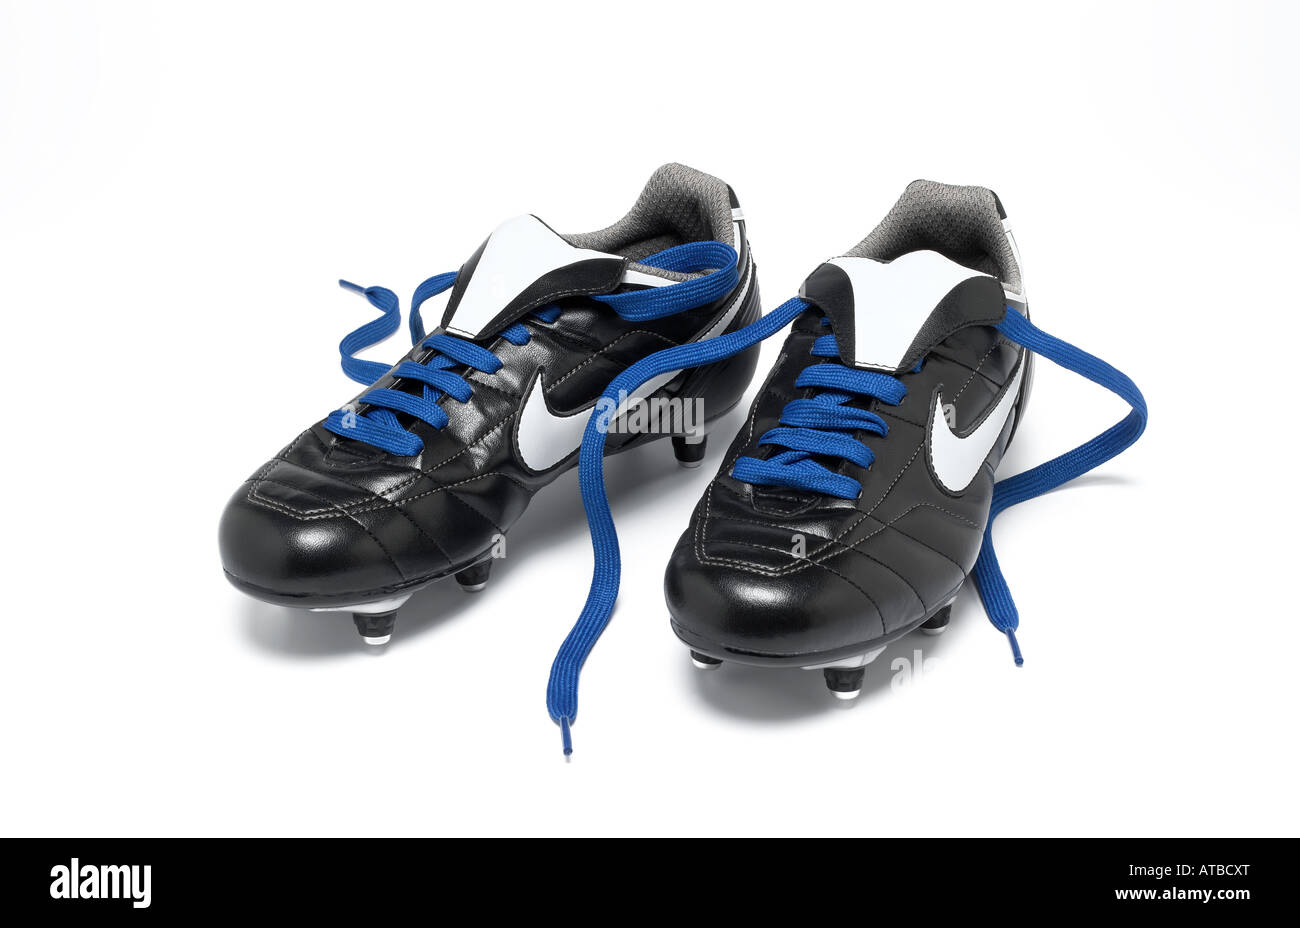 football boots - Stock Image